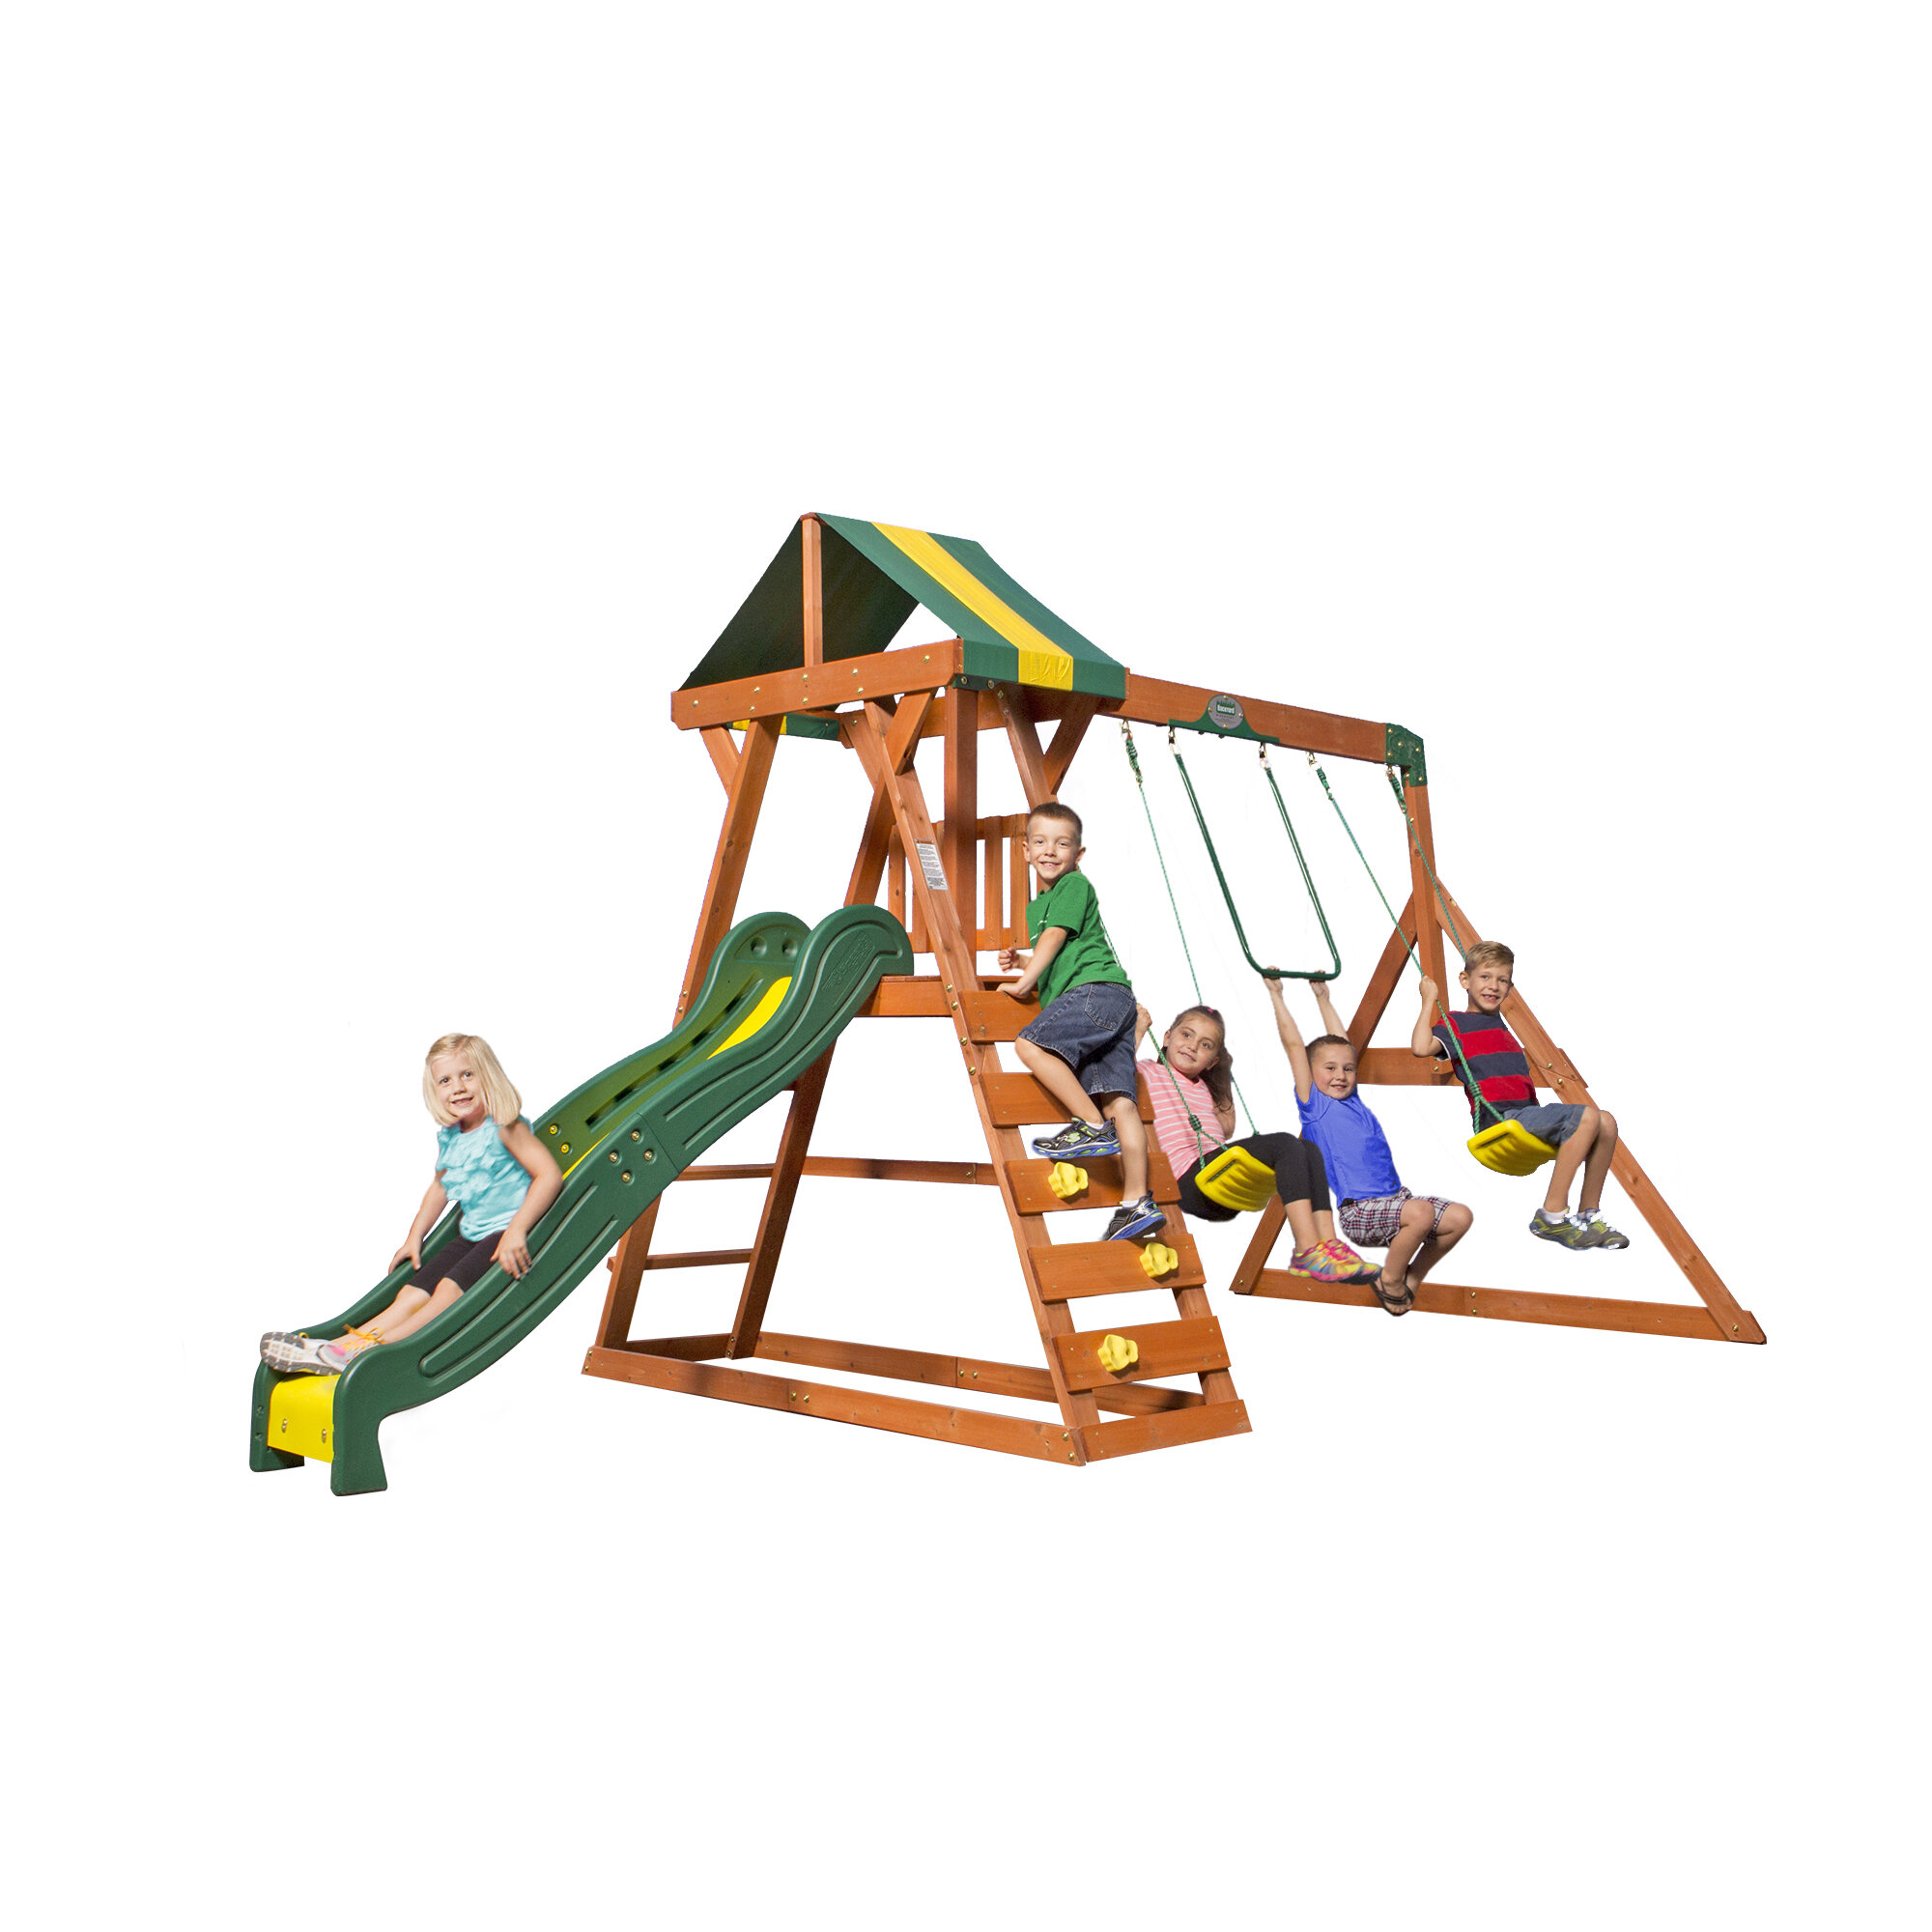 toddler sandy swing cove sets wonderful set toys walmart pictures ideas treasure children pics image backyard us the on pact premium ashberry reviews r home charle discovery full paradise of windale somerset outside for wooden best big wood